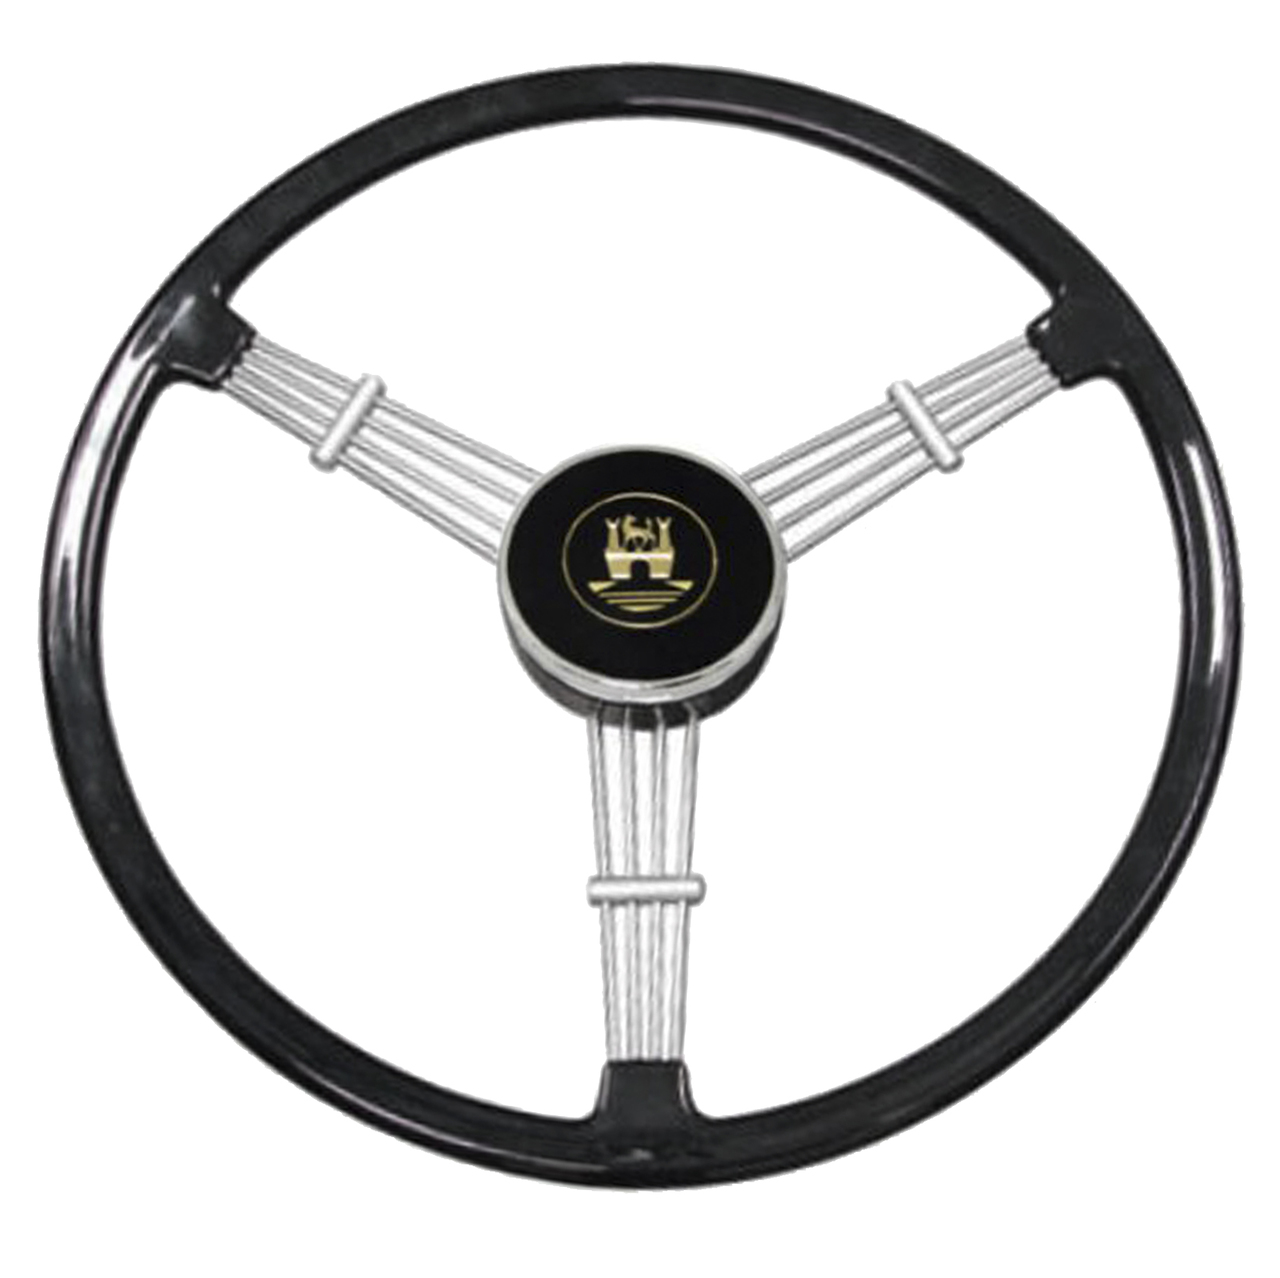 Empi 79 4059 Banjo Style Black Vintage 3 Spoke Steering Wheel 15 1